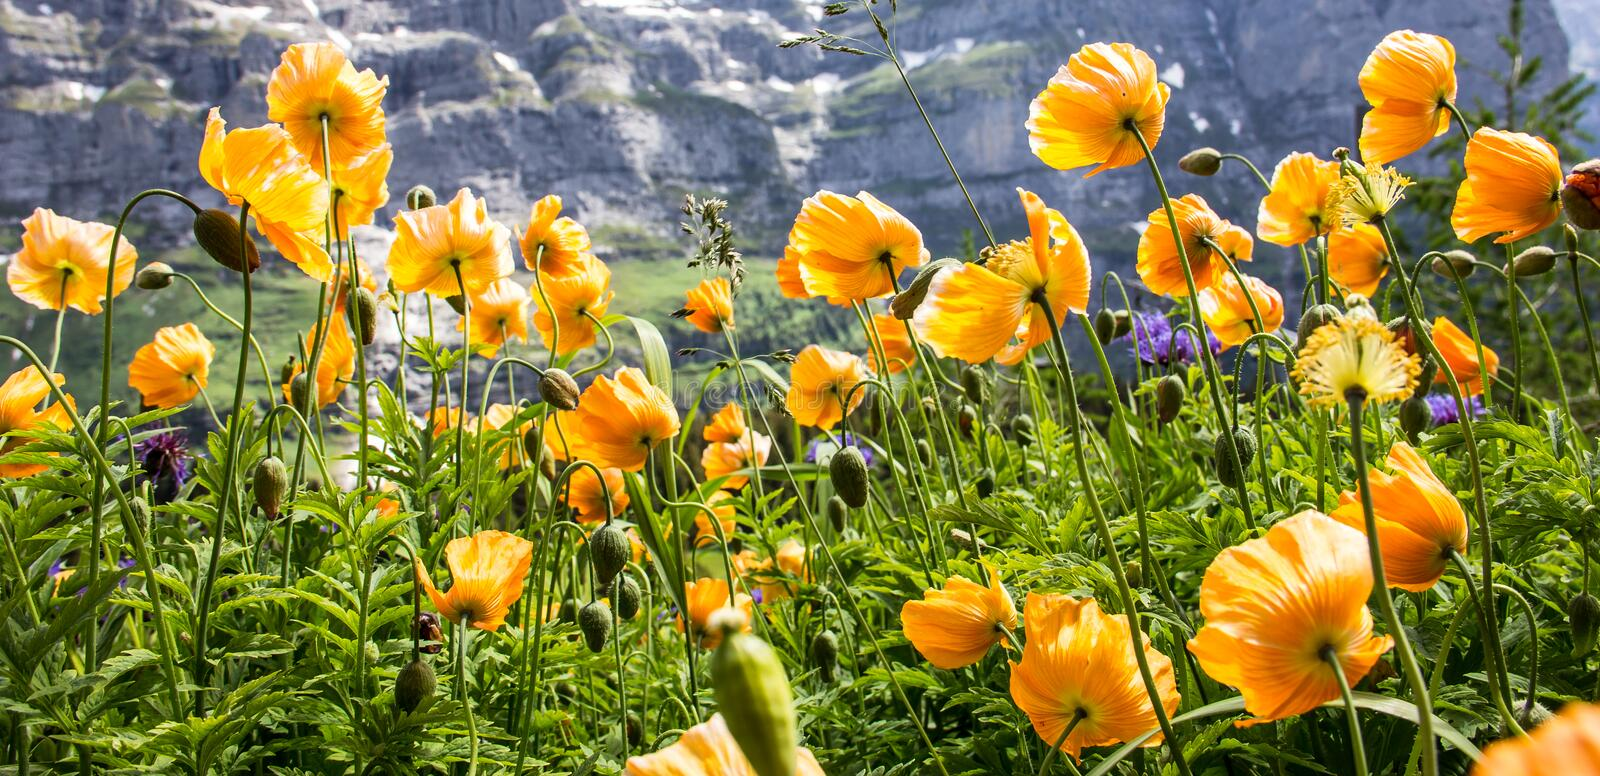 Wild yellow poppy flowers facing the sunlight in alpine valley, Poppy Flowers prosper in warm, dry climates, but withstand frost. Wild yellow poppy flowers stock images